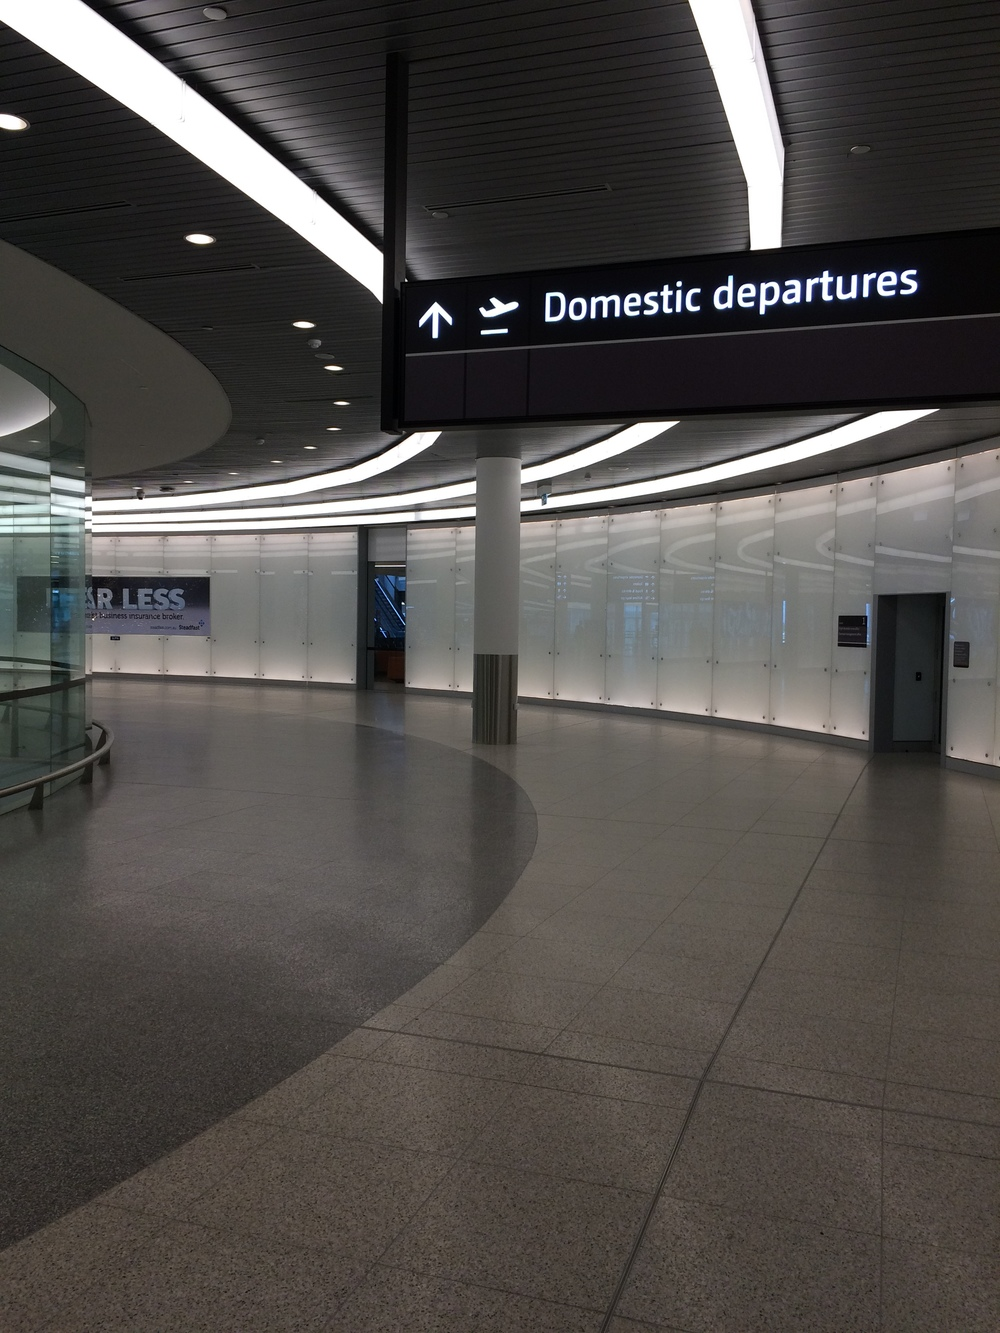 Impressive walkway to the departures hall and lounge